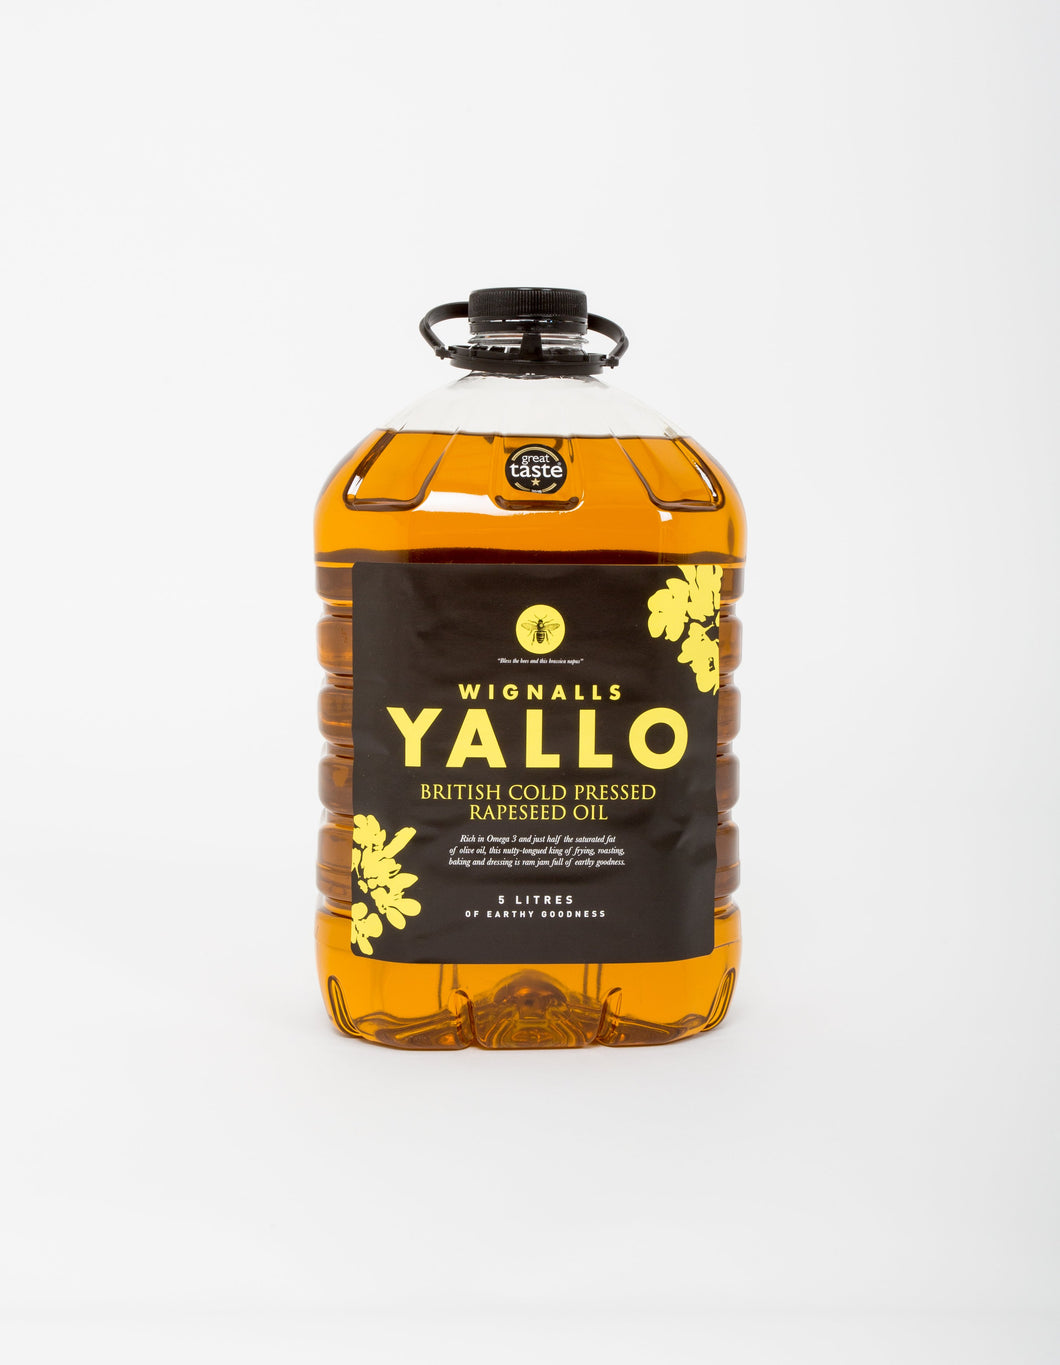 Wignalls Yallo Cold Pressed Extra Virgin Rapeseed Oil 5ltr